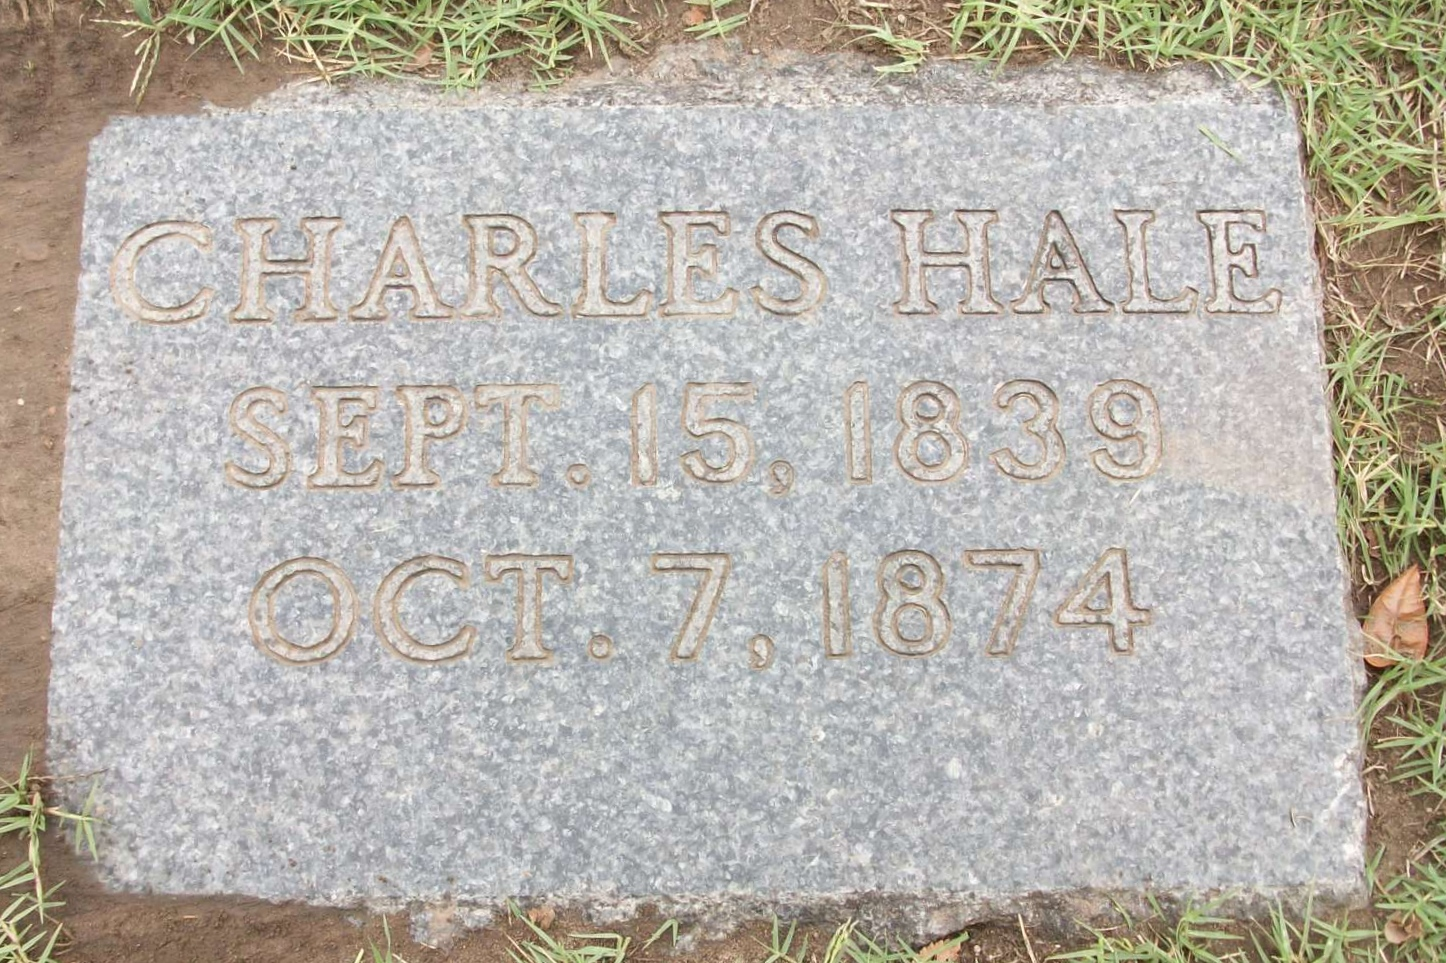 Special Officer Charles Hale | Atchison, Topeka and Santa Fe Railroad Police Department, Railroad Police